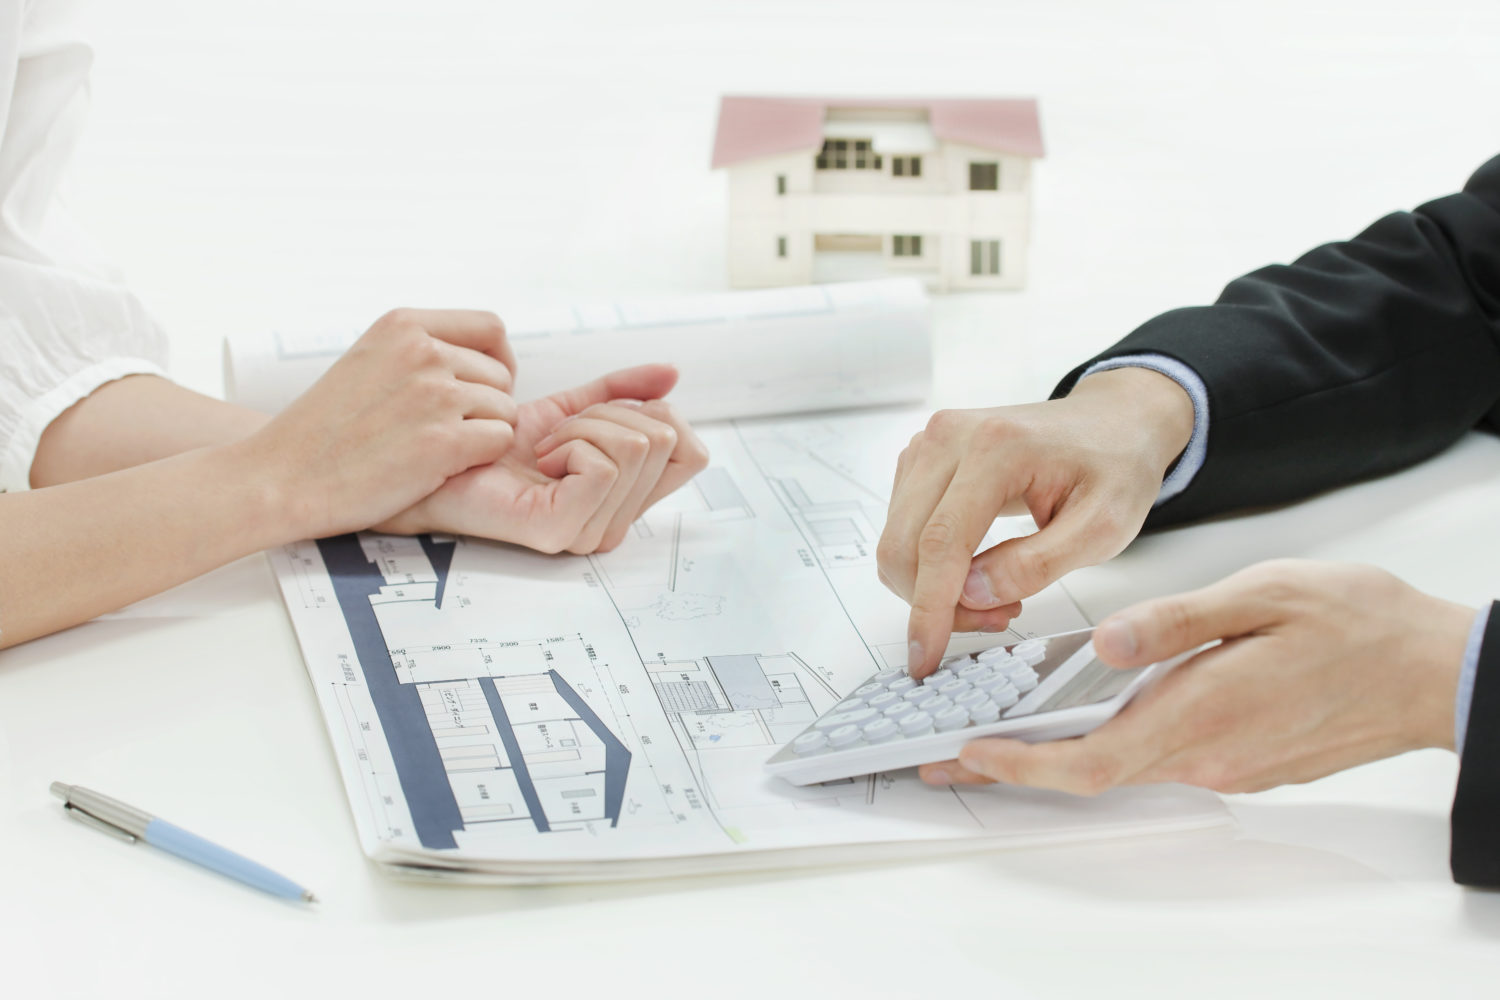 Request a Free land Appraisal